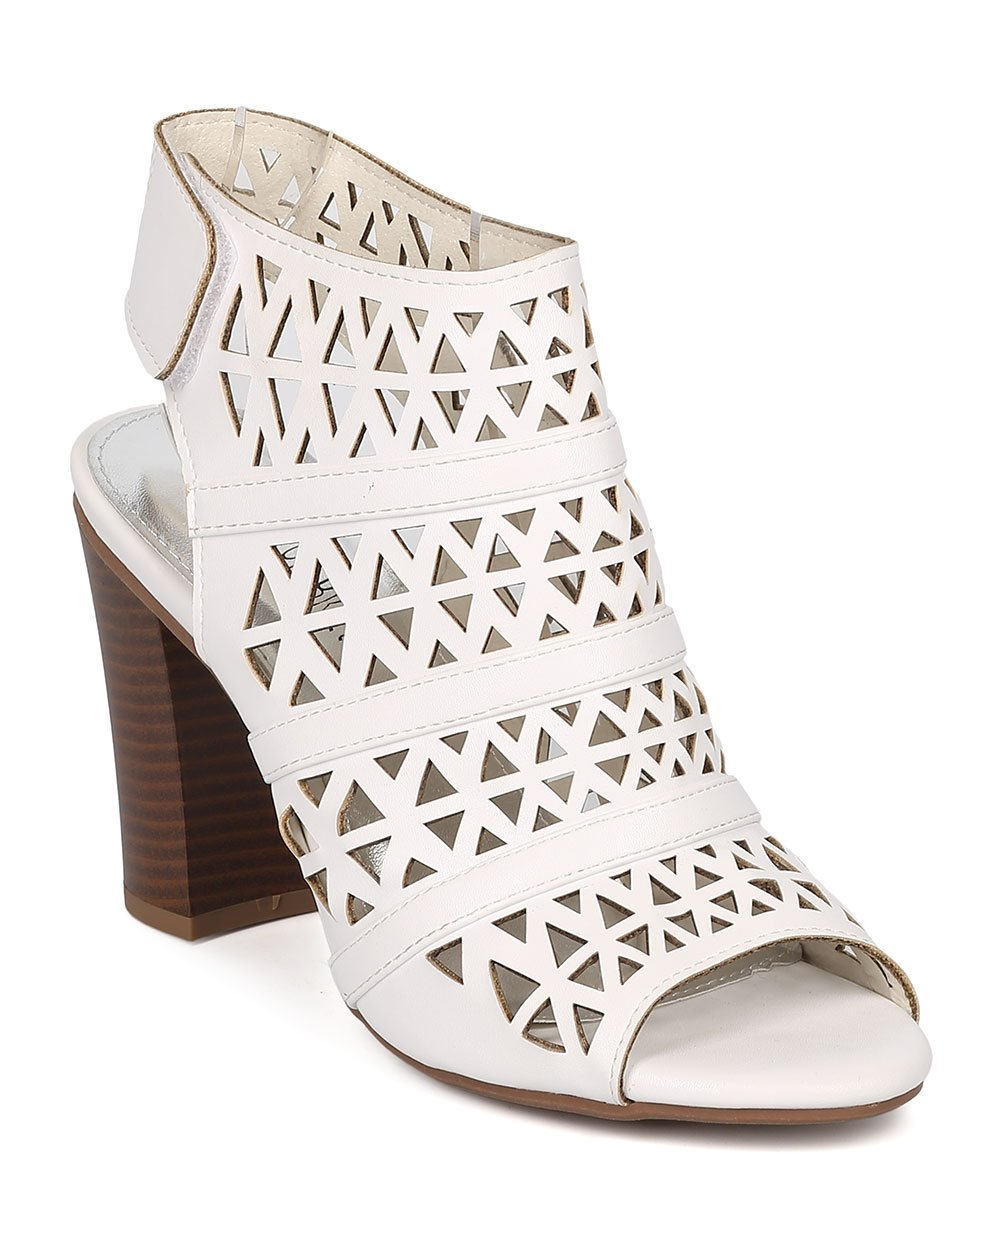 Women Leatherette Peep Toe Perforated Chunky Heel Slingback Mule GG78 - White (Size: 6.5)